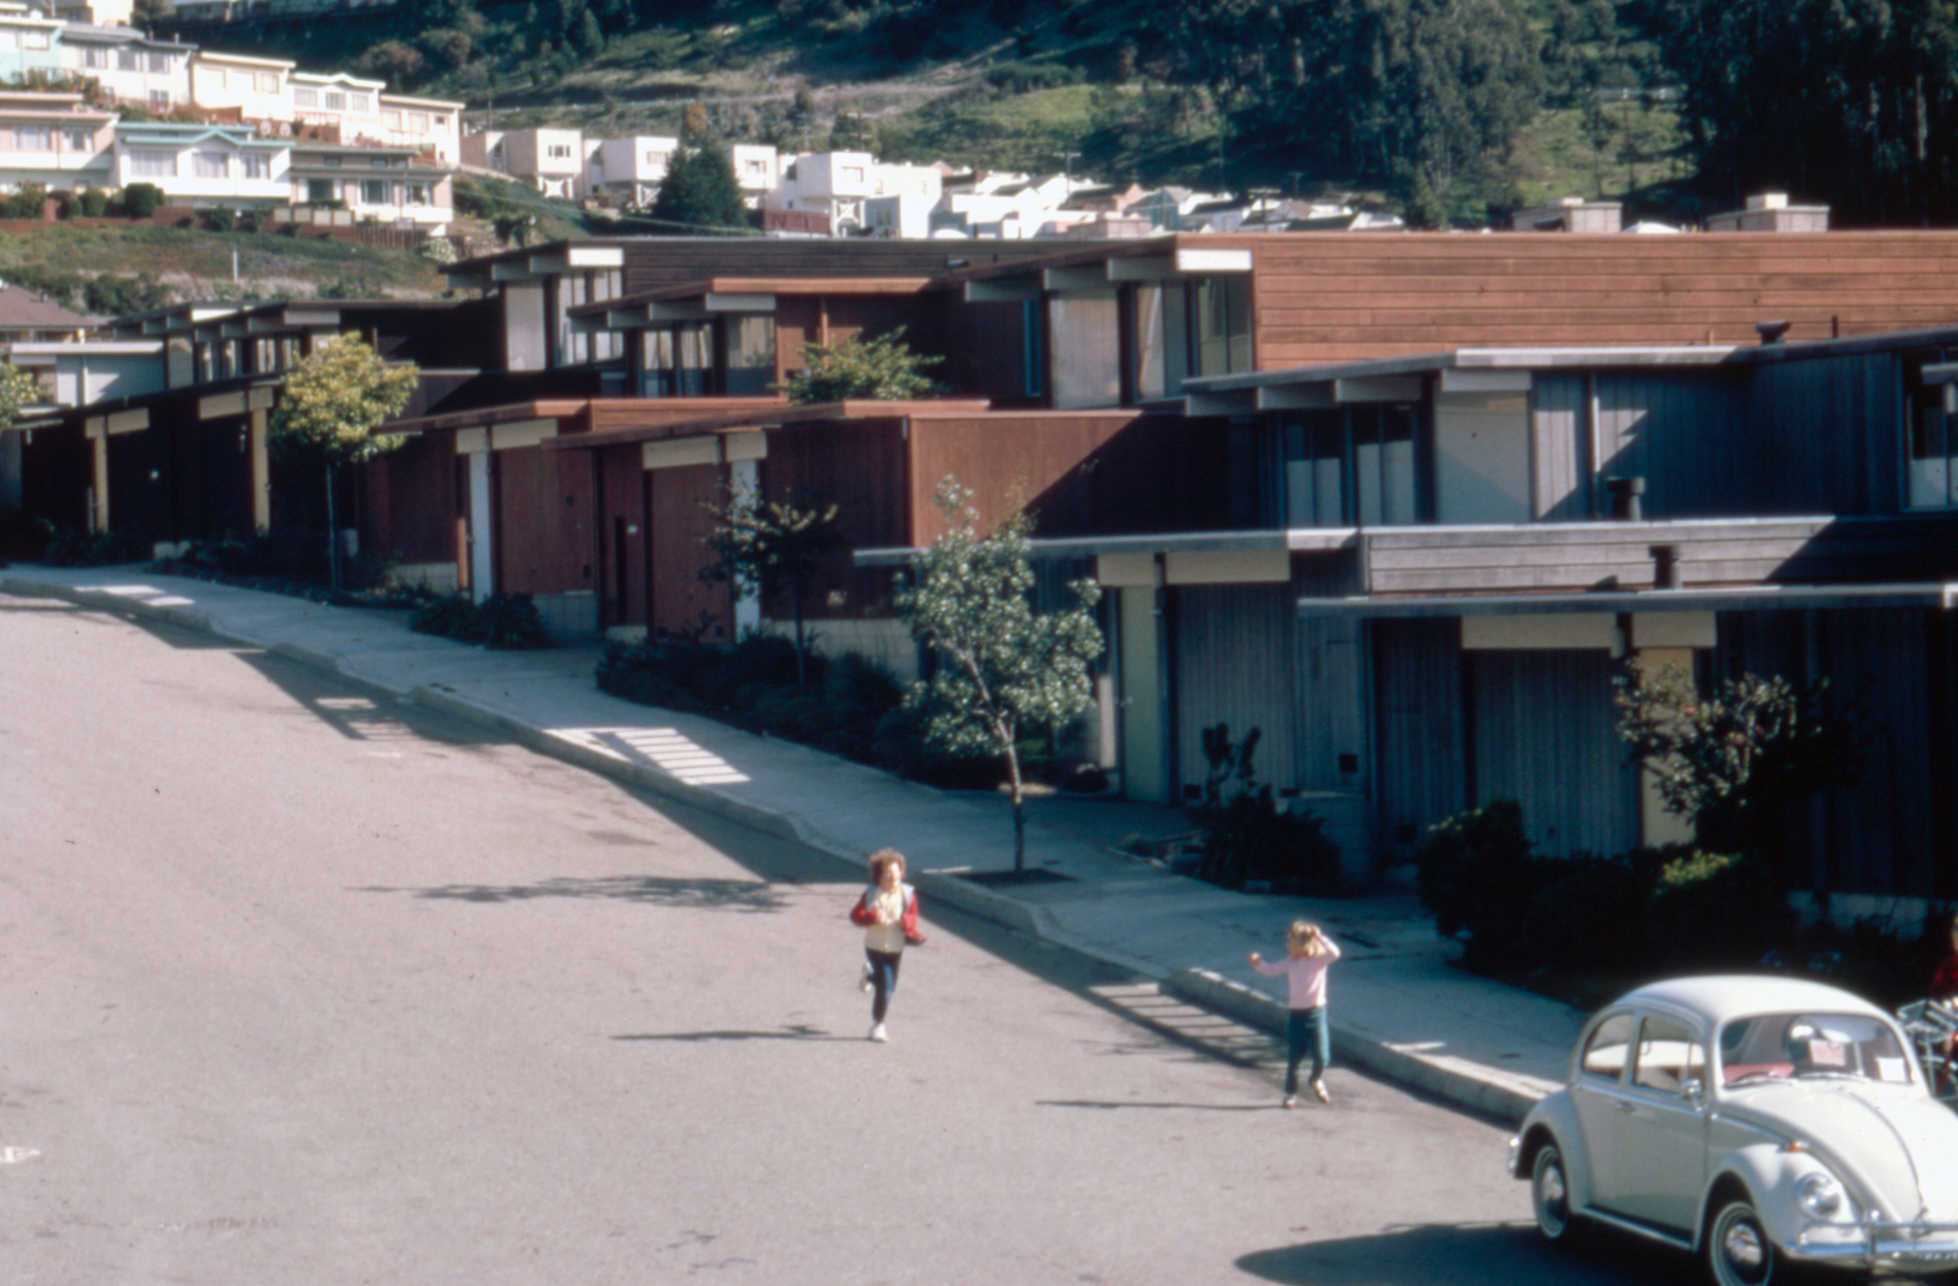 Historic photo of homes in Diamond Heights, a neighborhood in San Francisco California